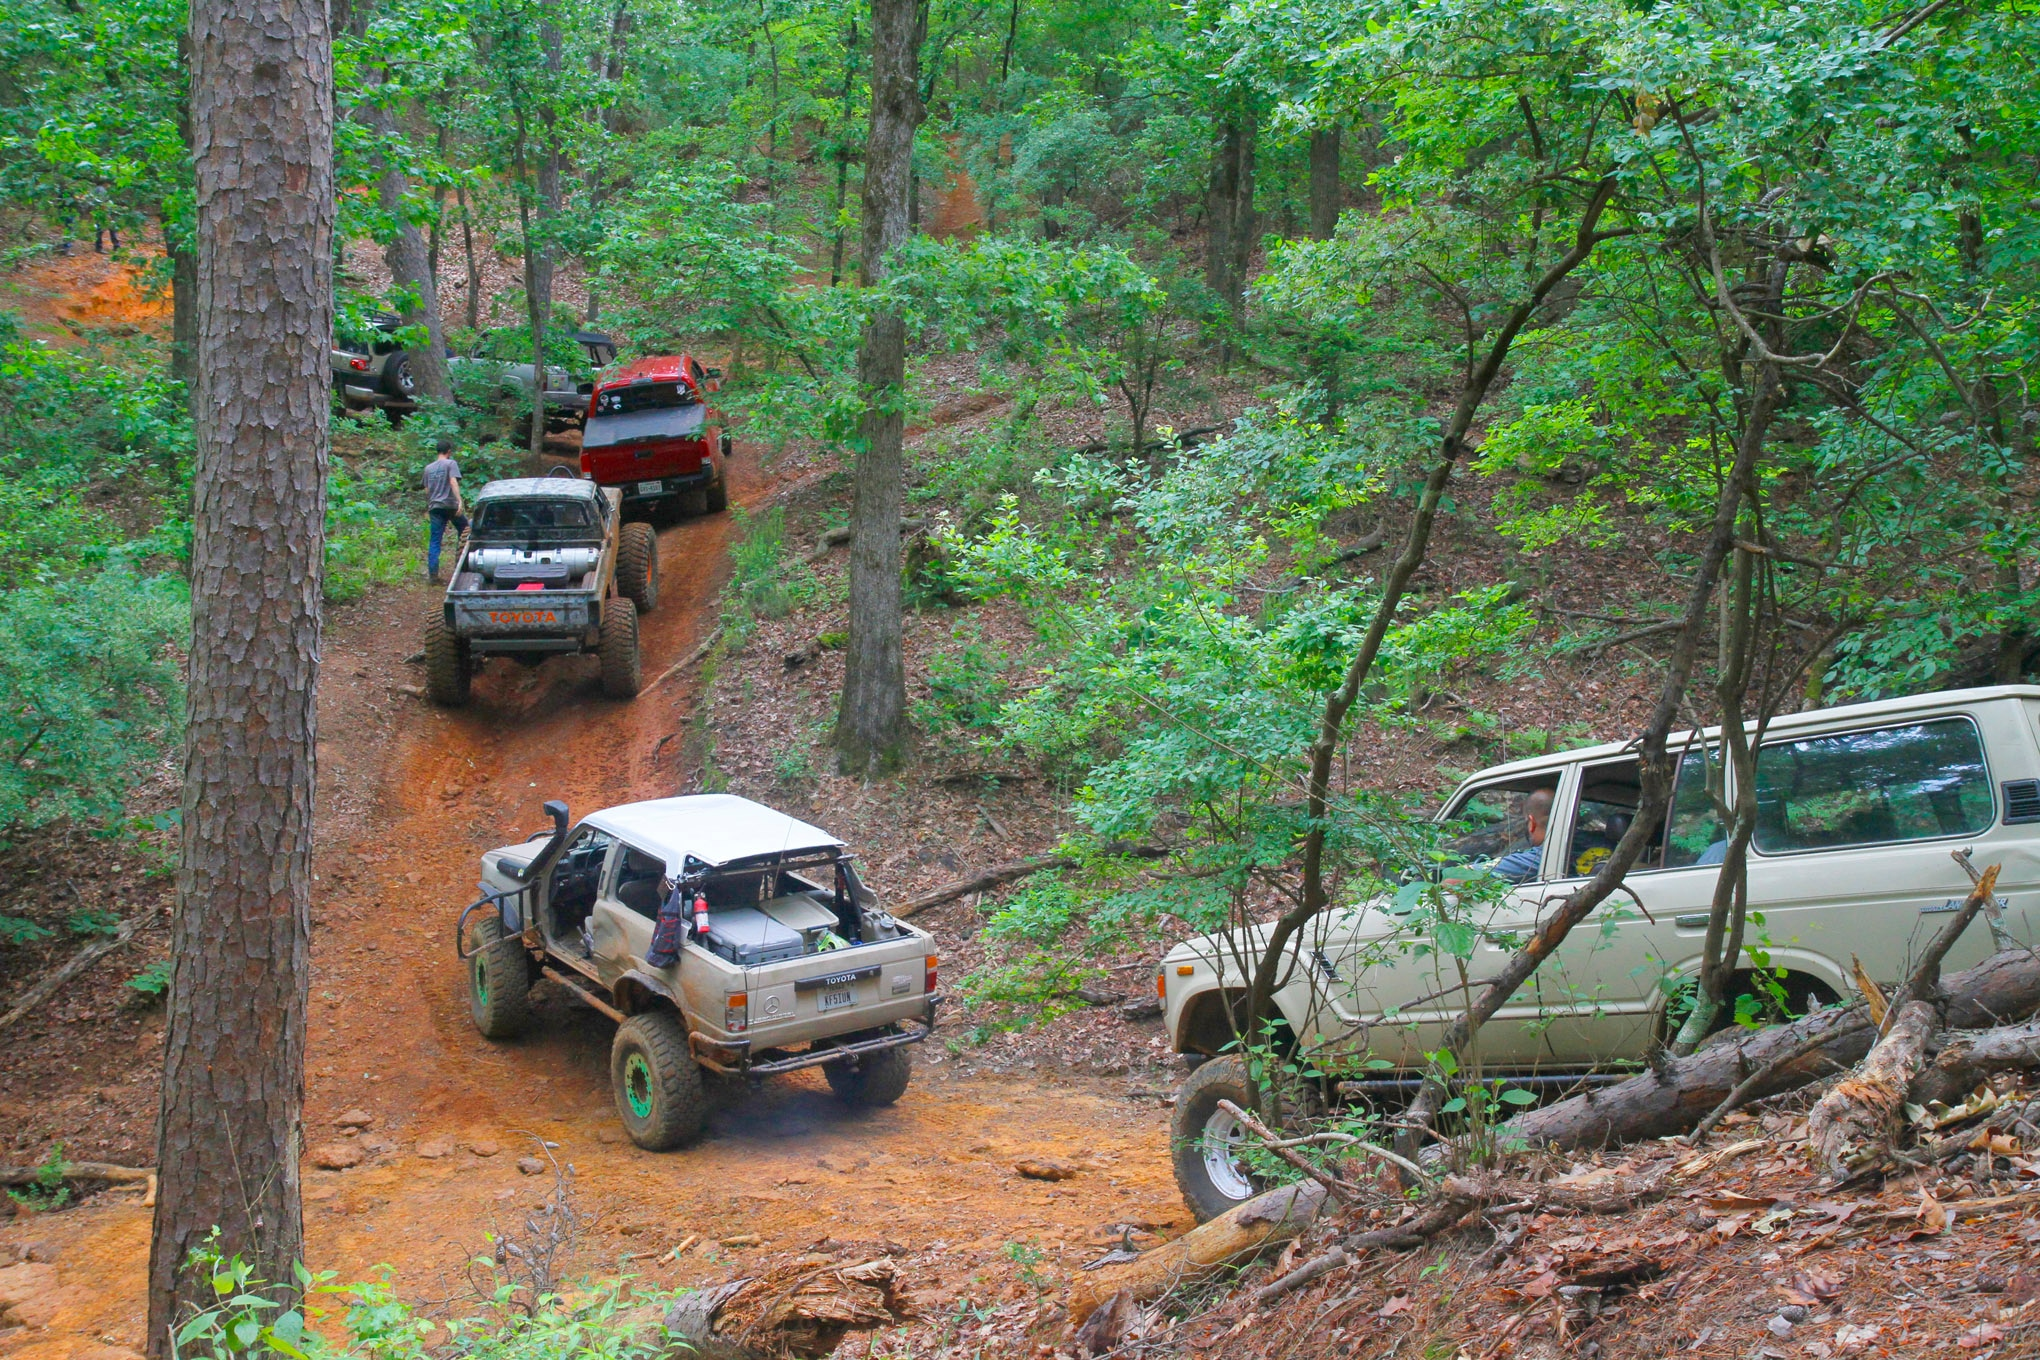 Most of the trails wind through the trees, and BMRA has some rocky hill climbs to fully test suspensions and traction.